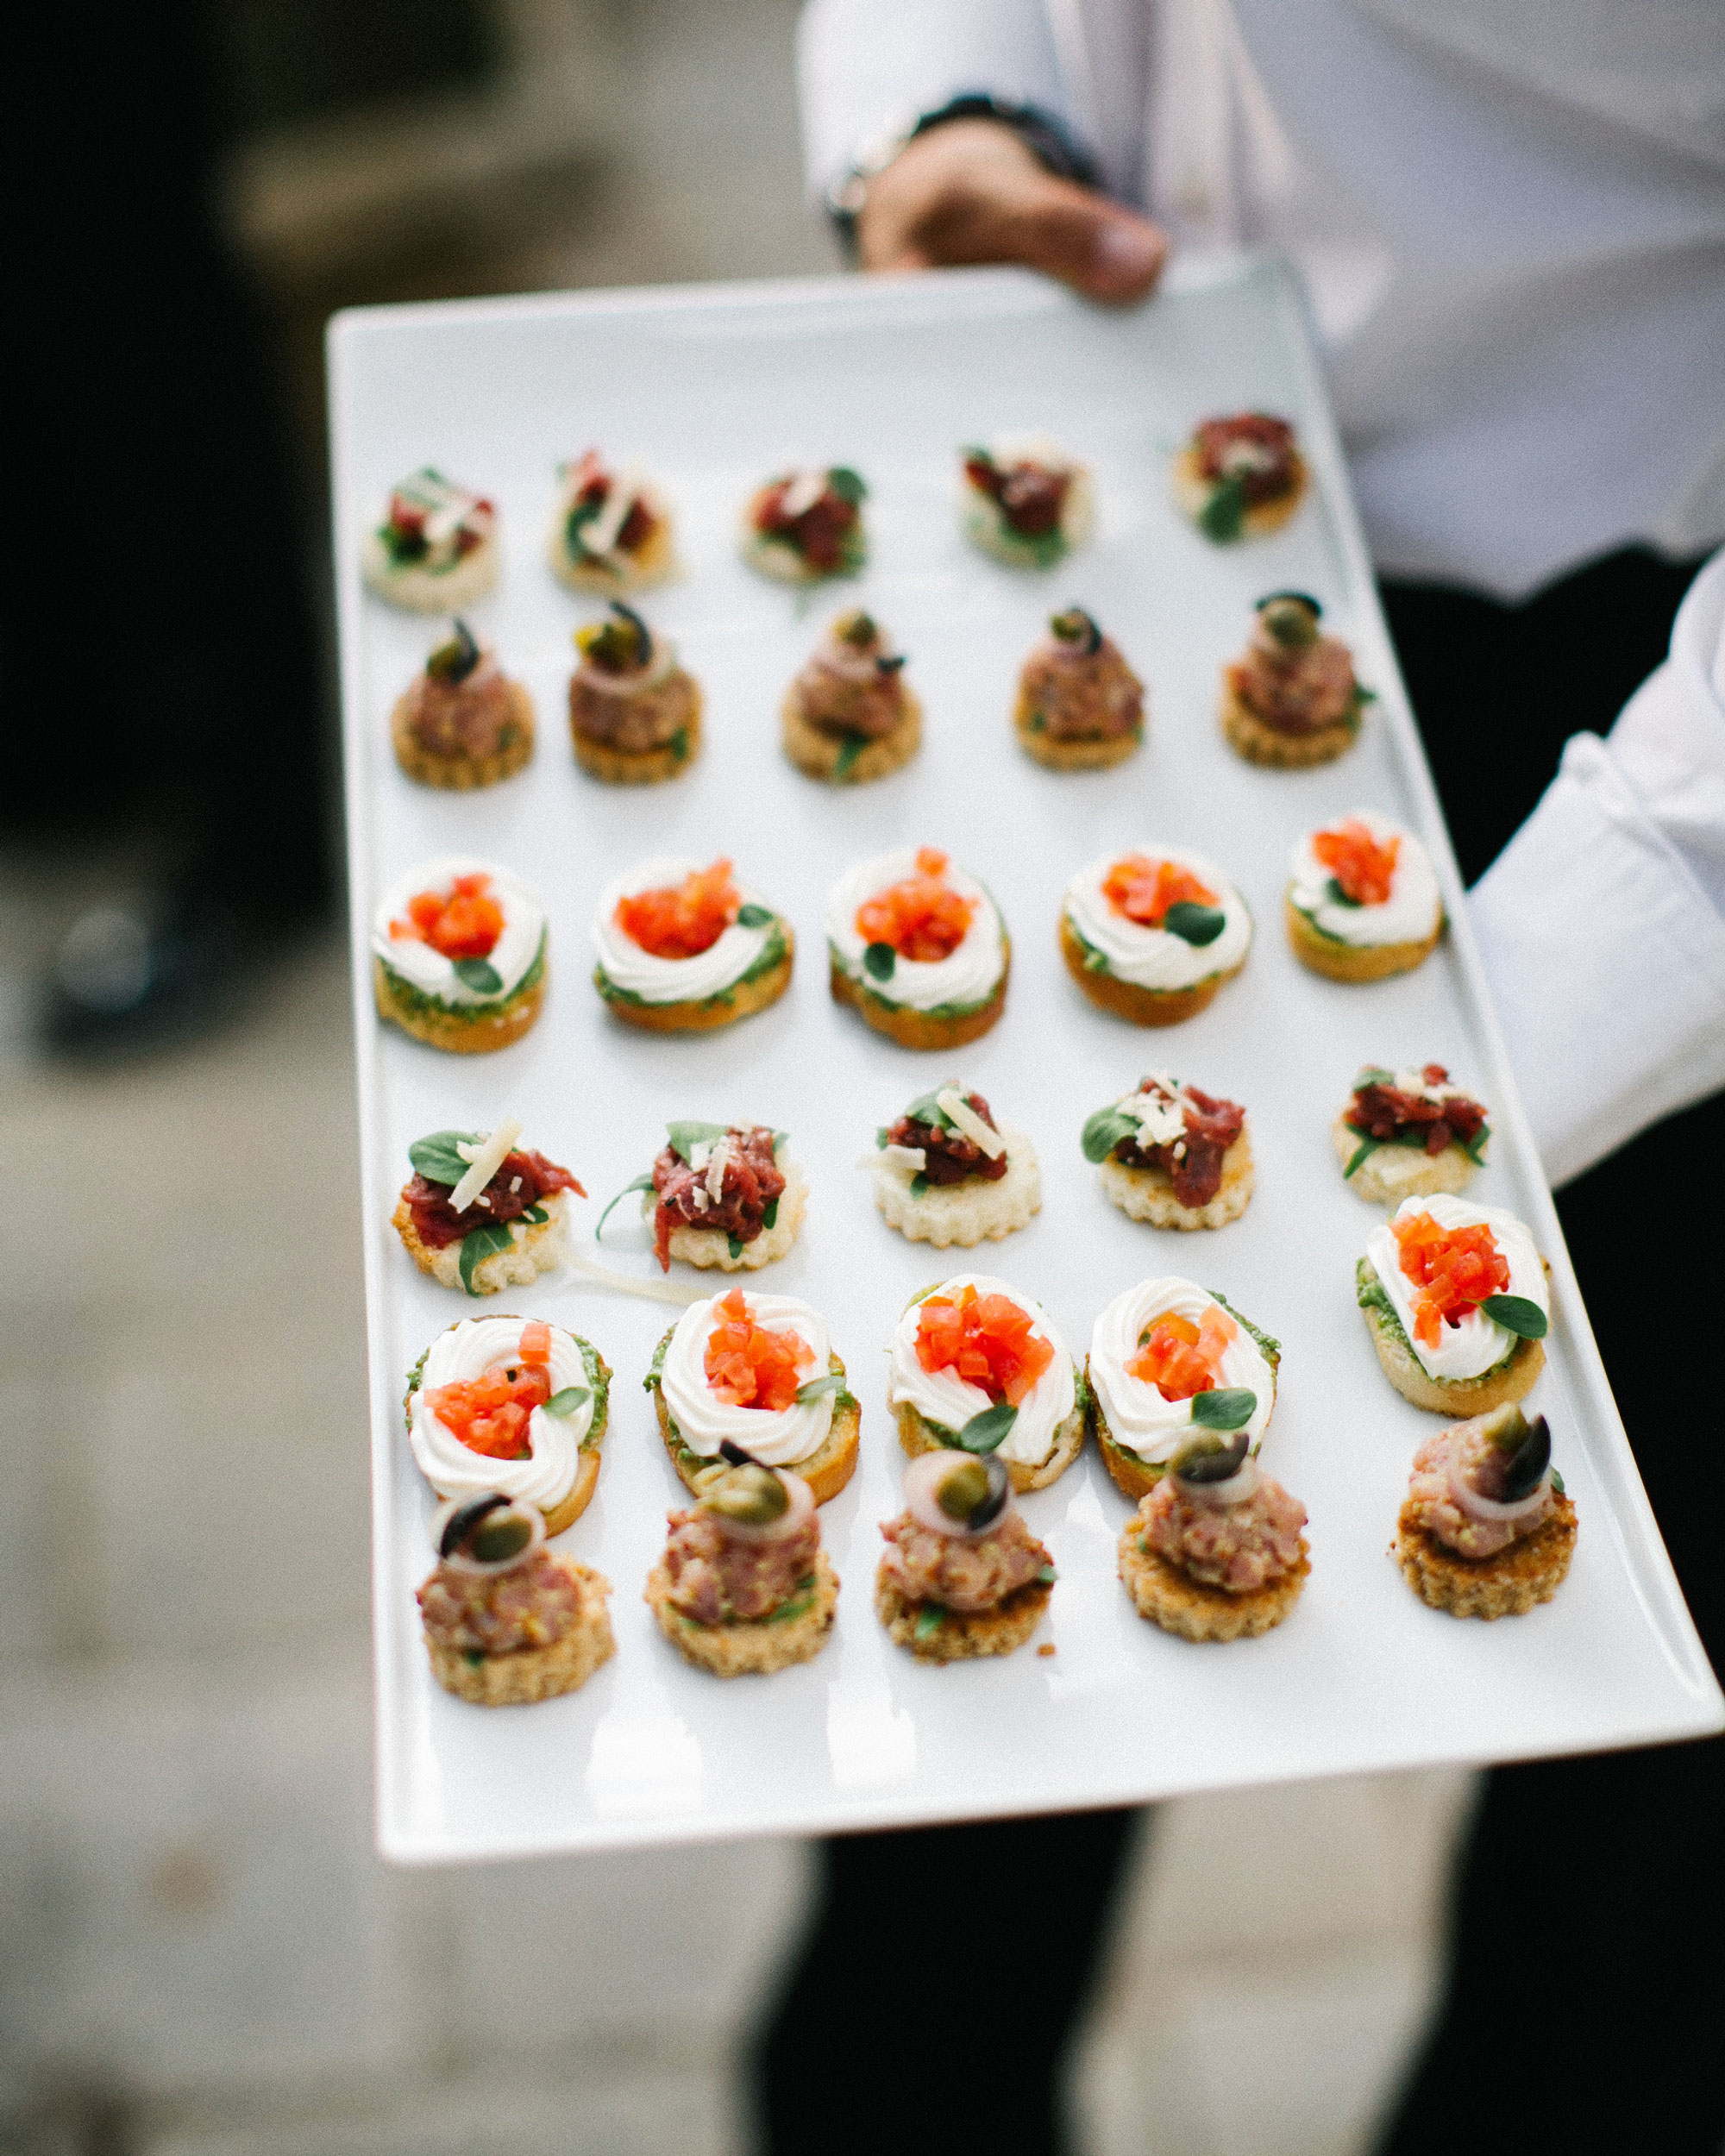 melissa-mike-wedding-appetizers-0169-s112764-0316.jpg